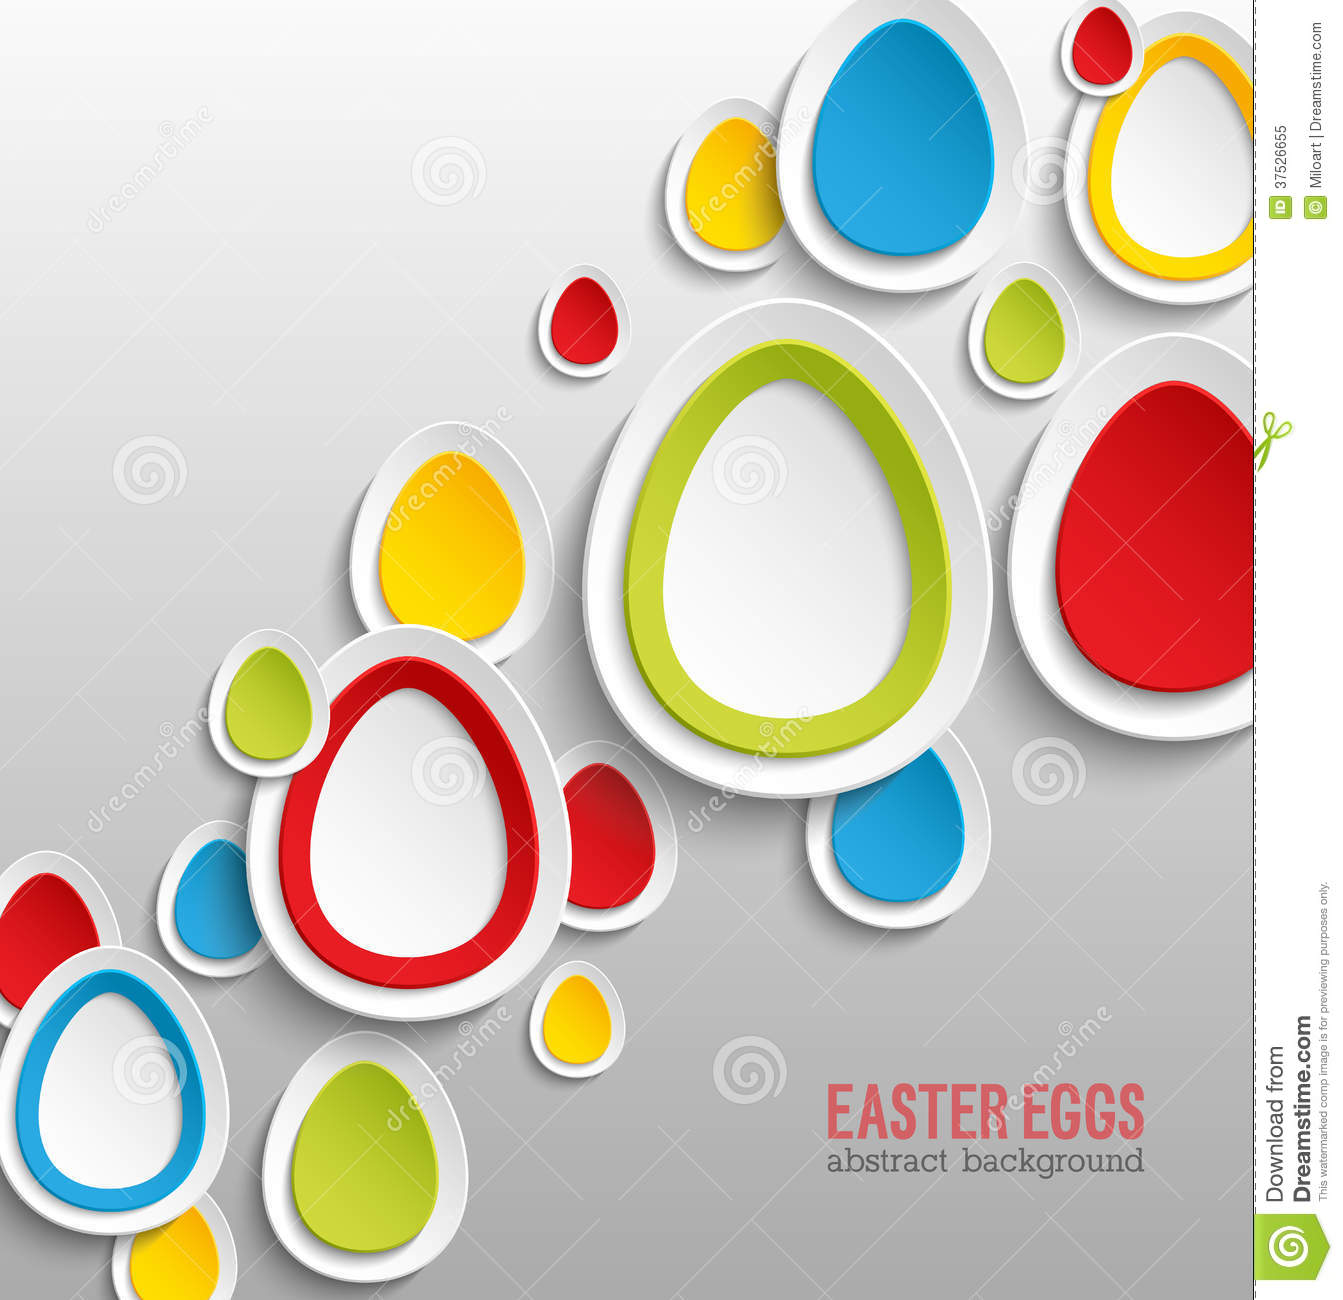 Easter Eggs Abstract Colorful Background. Royalty Free